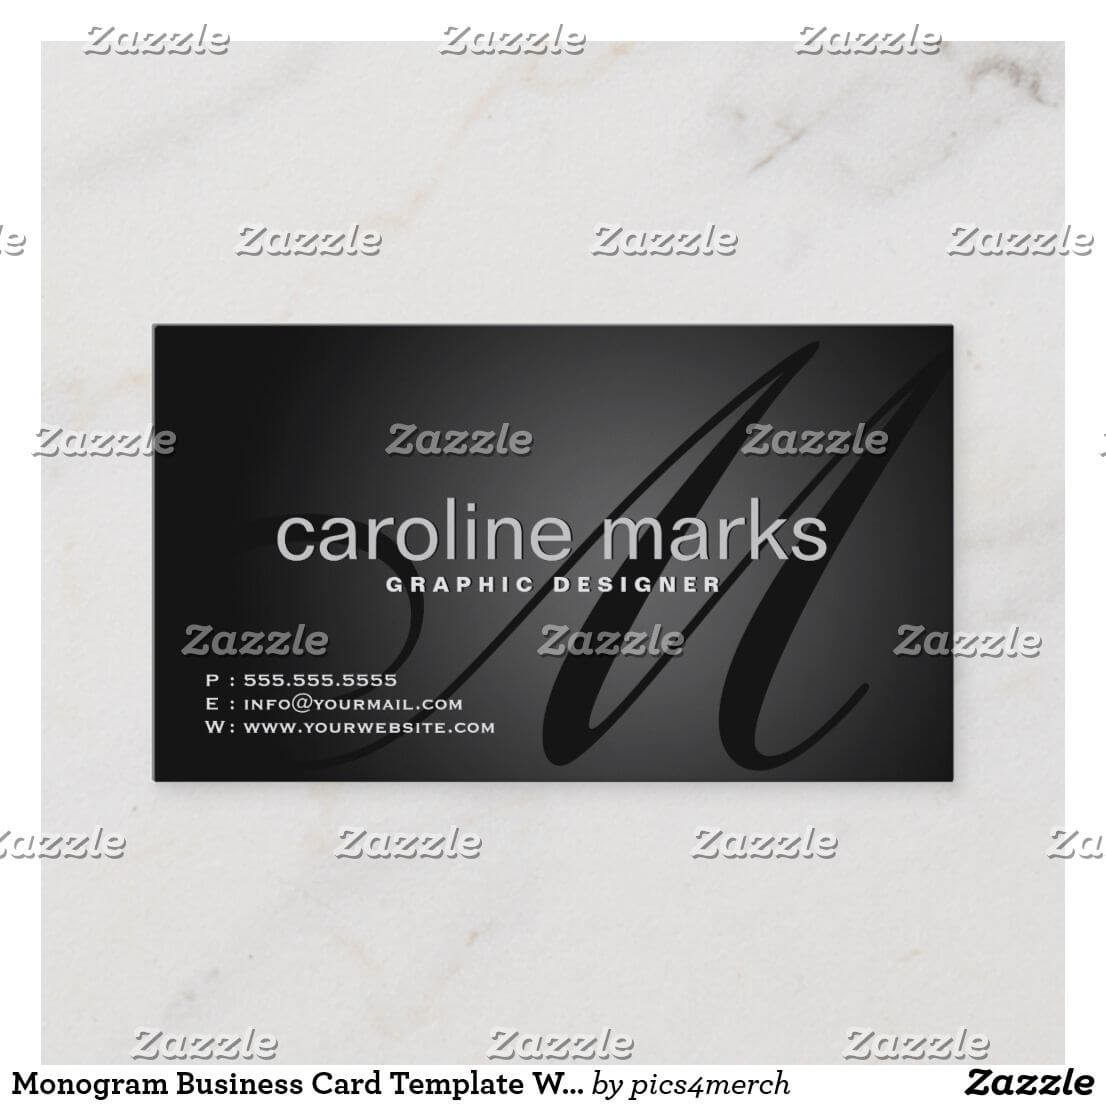 Monogram Business Card Template With Qr Code | Zazzle with Qr Code Business Card Template